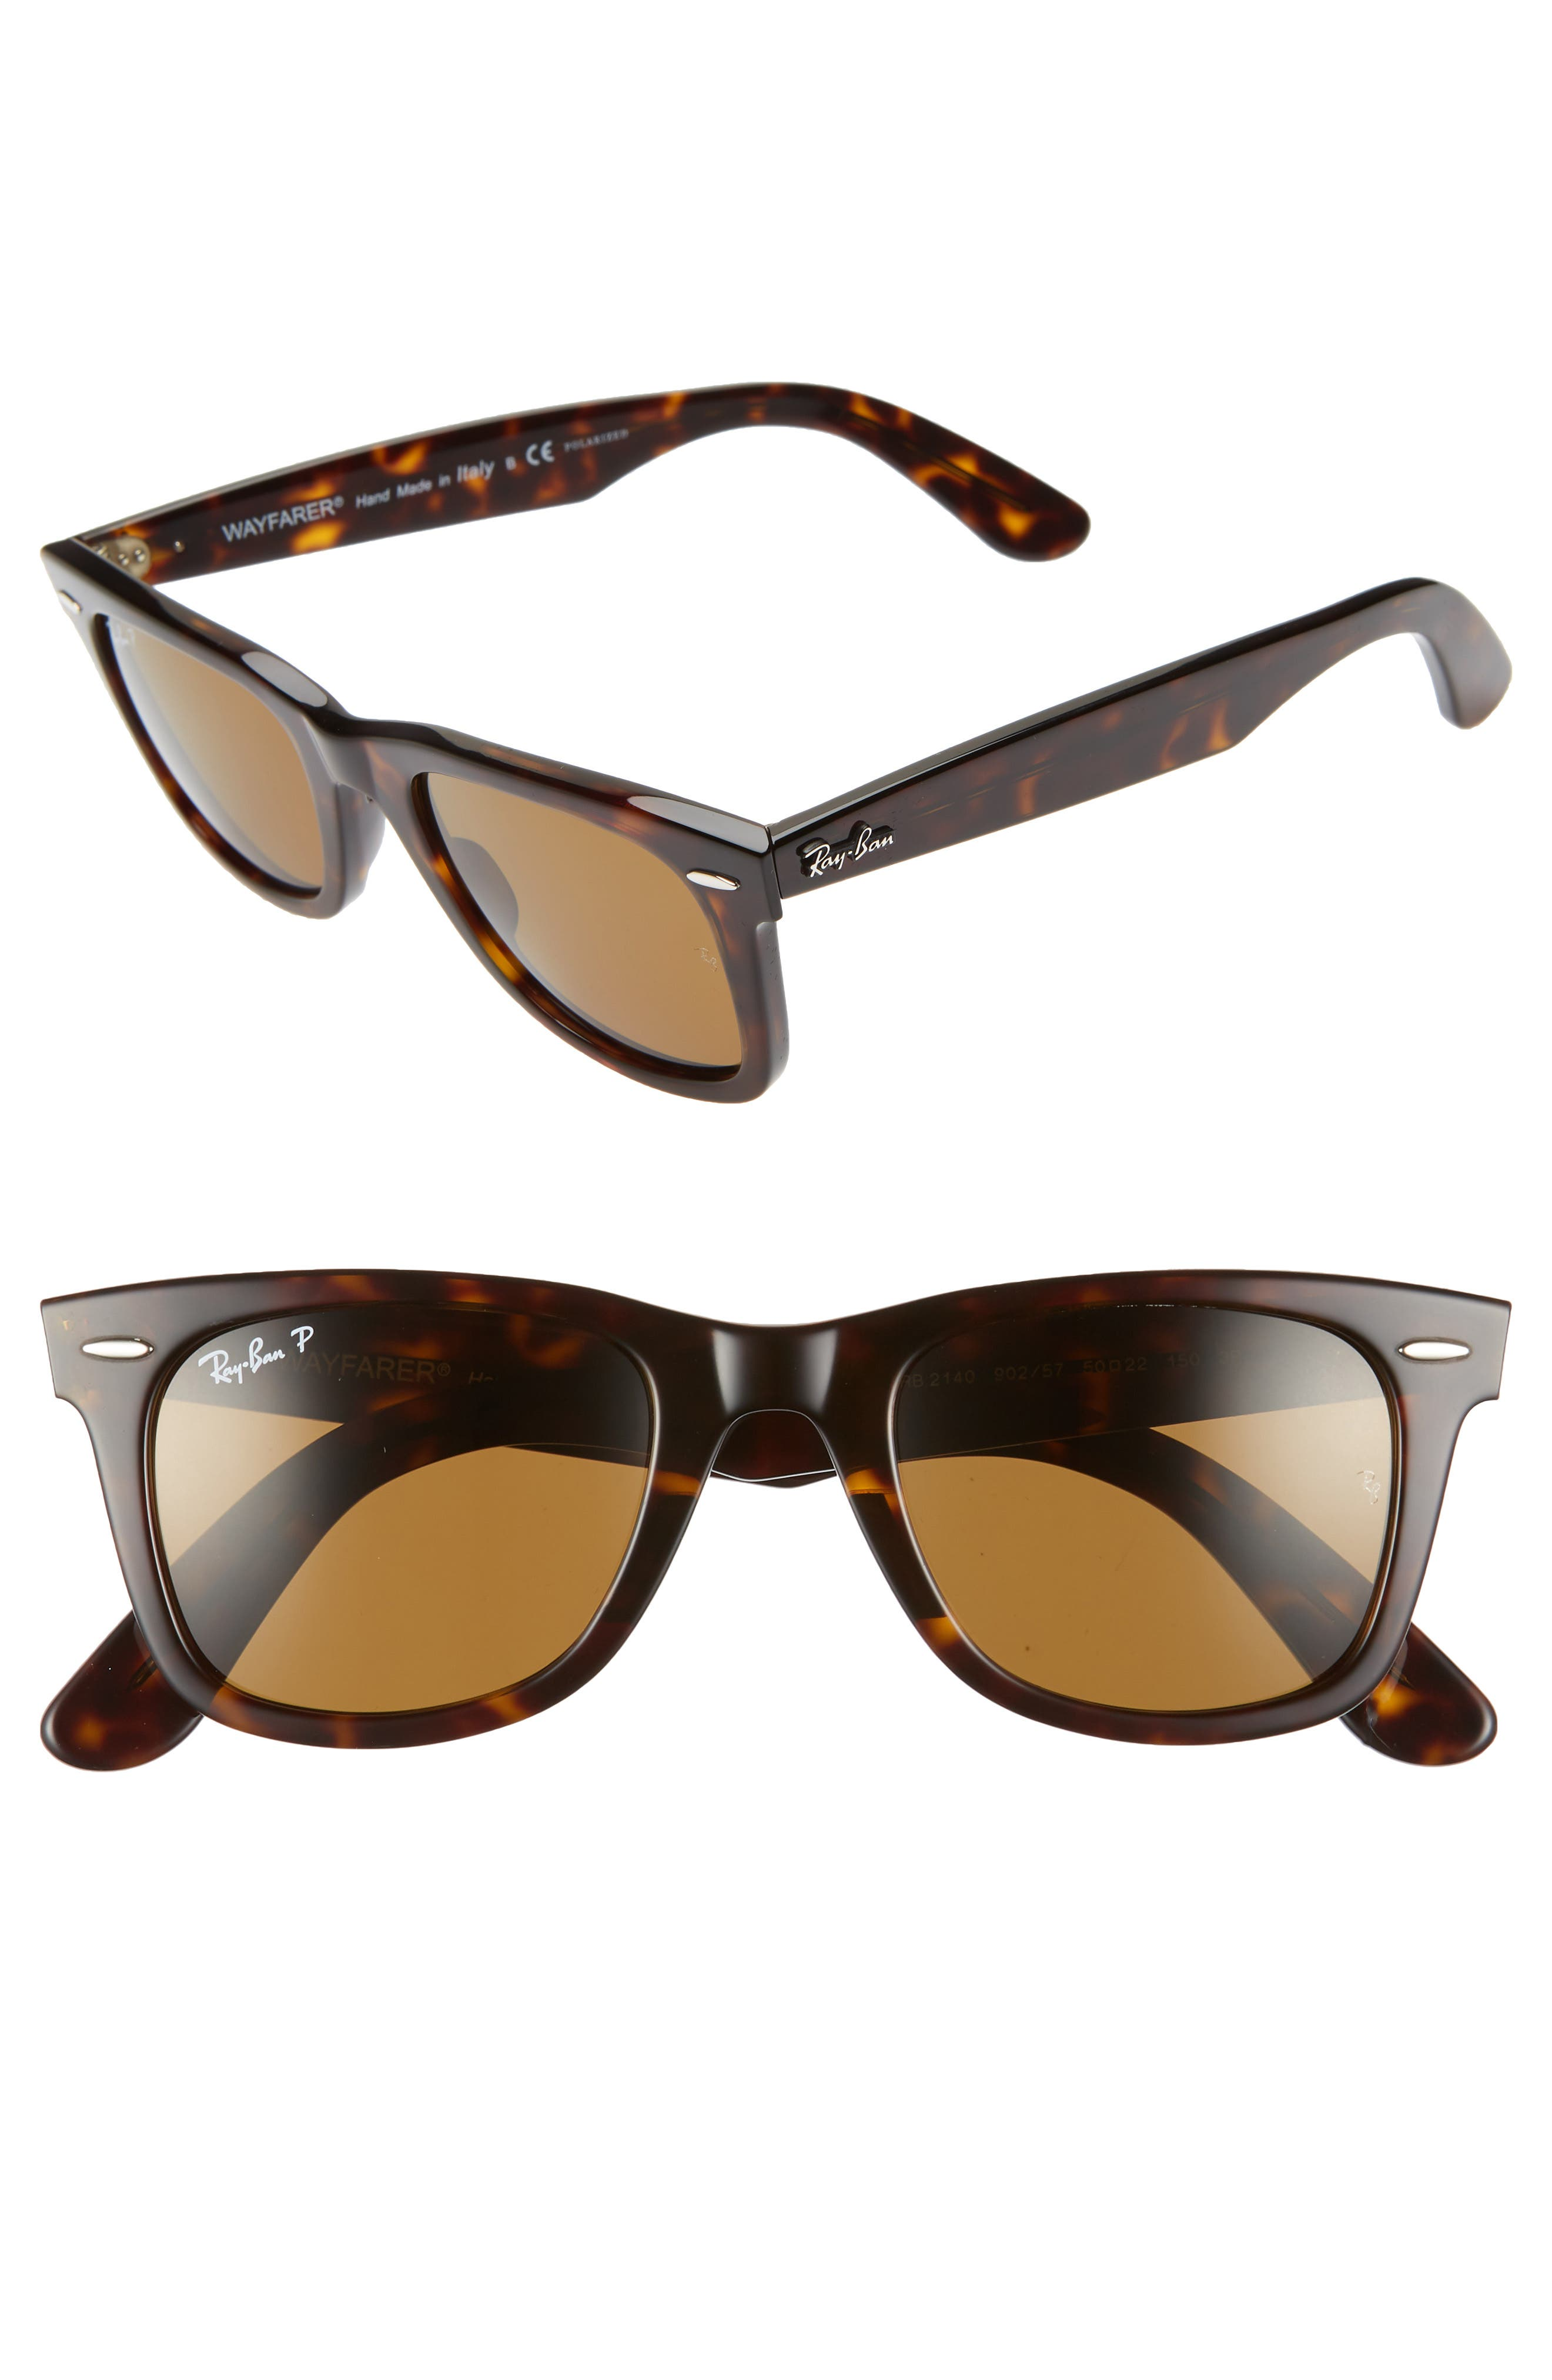 Standard Classic Wayfarer 50mm Polarized Sunglasses,                             Main thumbnail 1, color,                             DARK TORTOISE/ BROWN SOLID